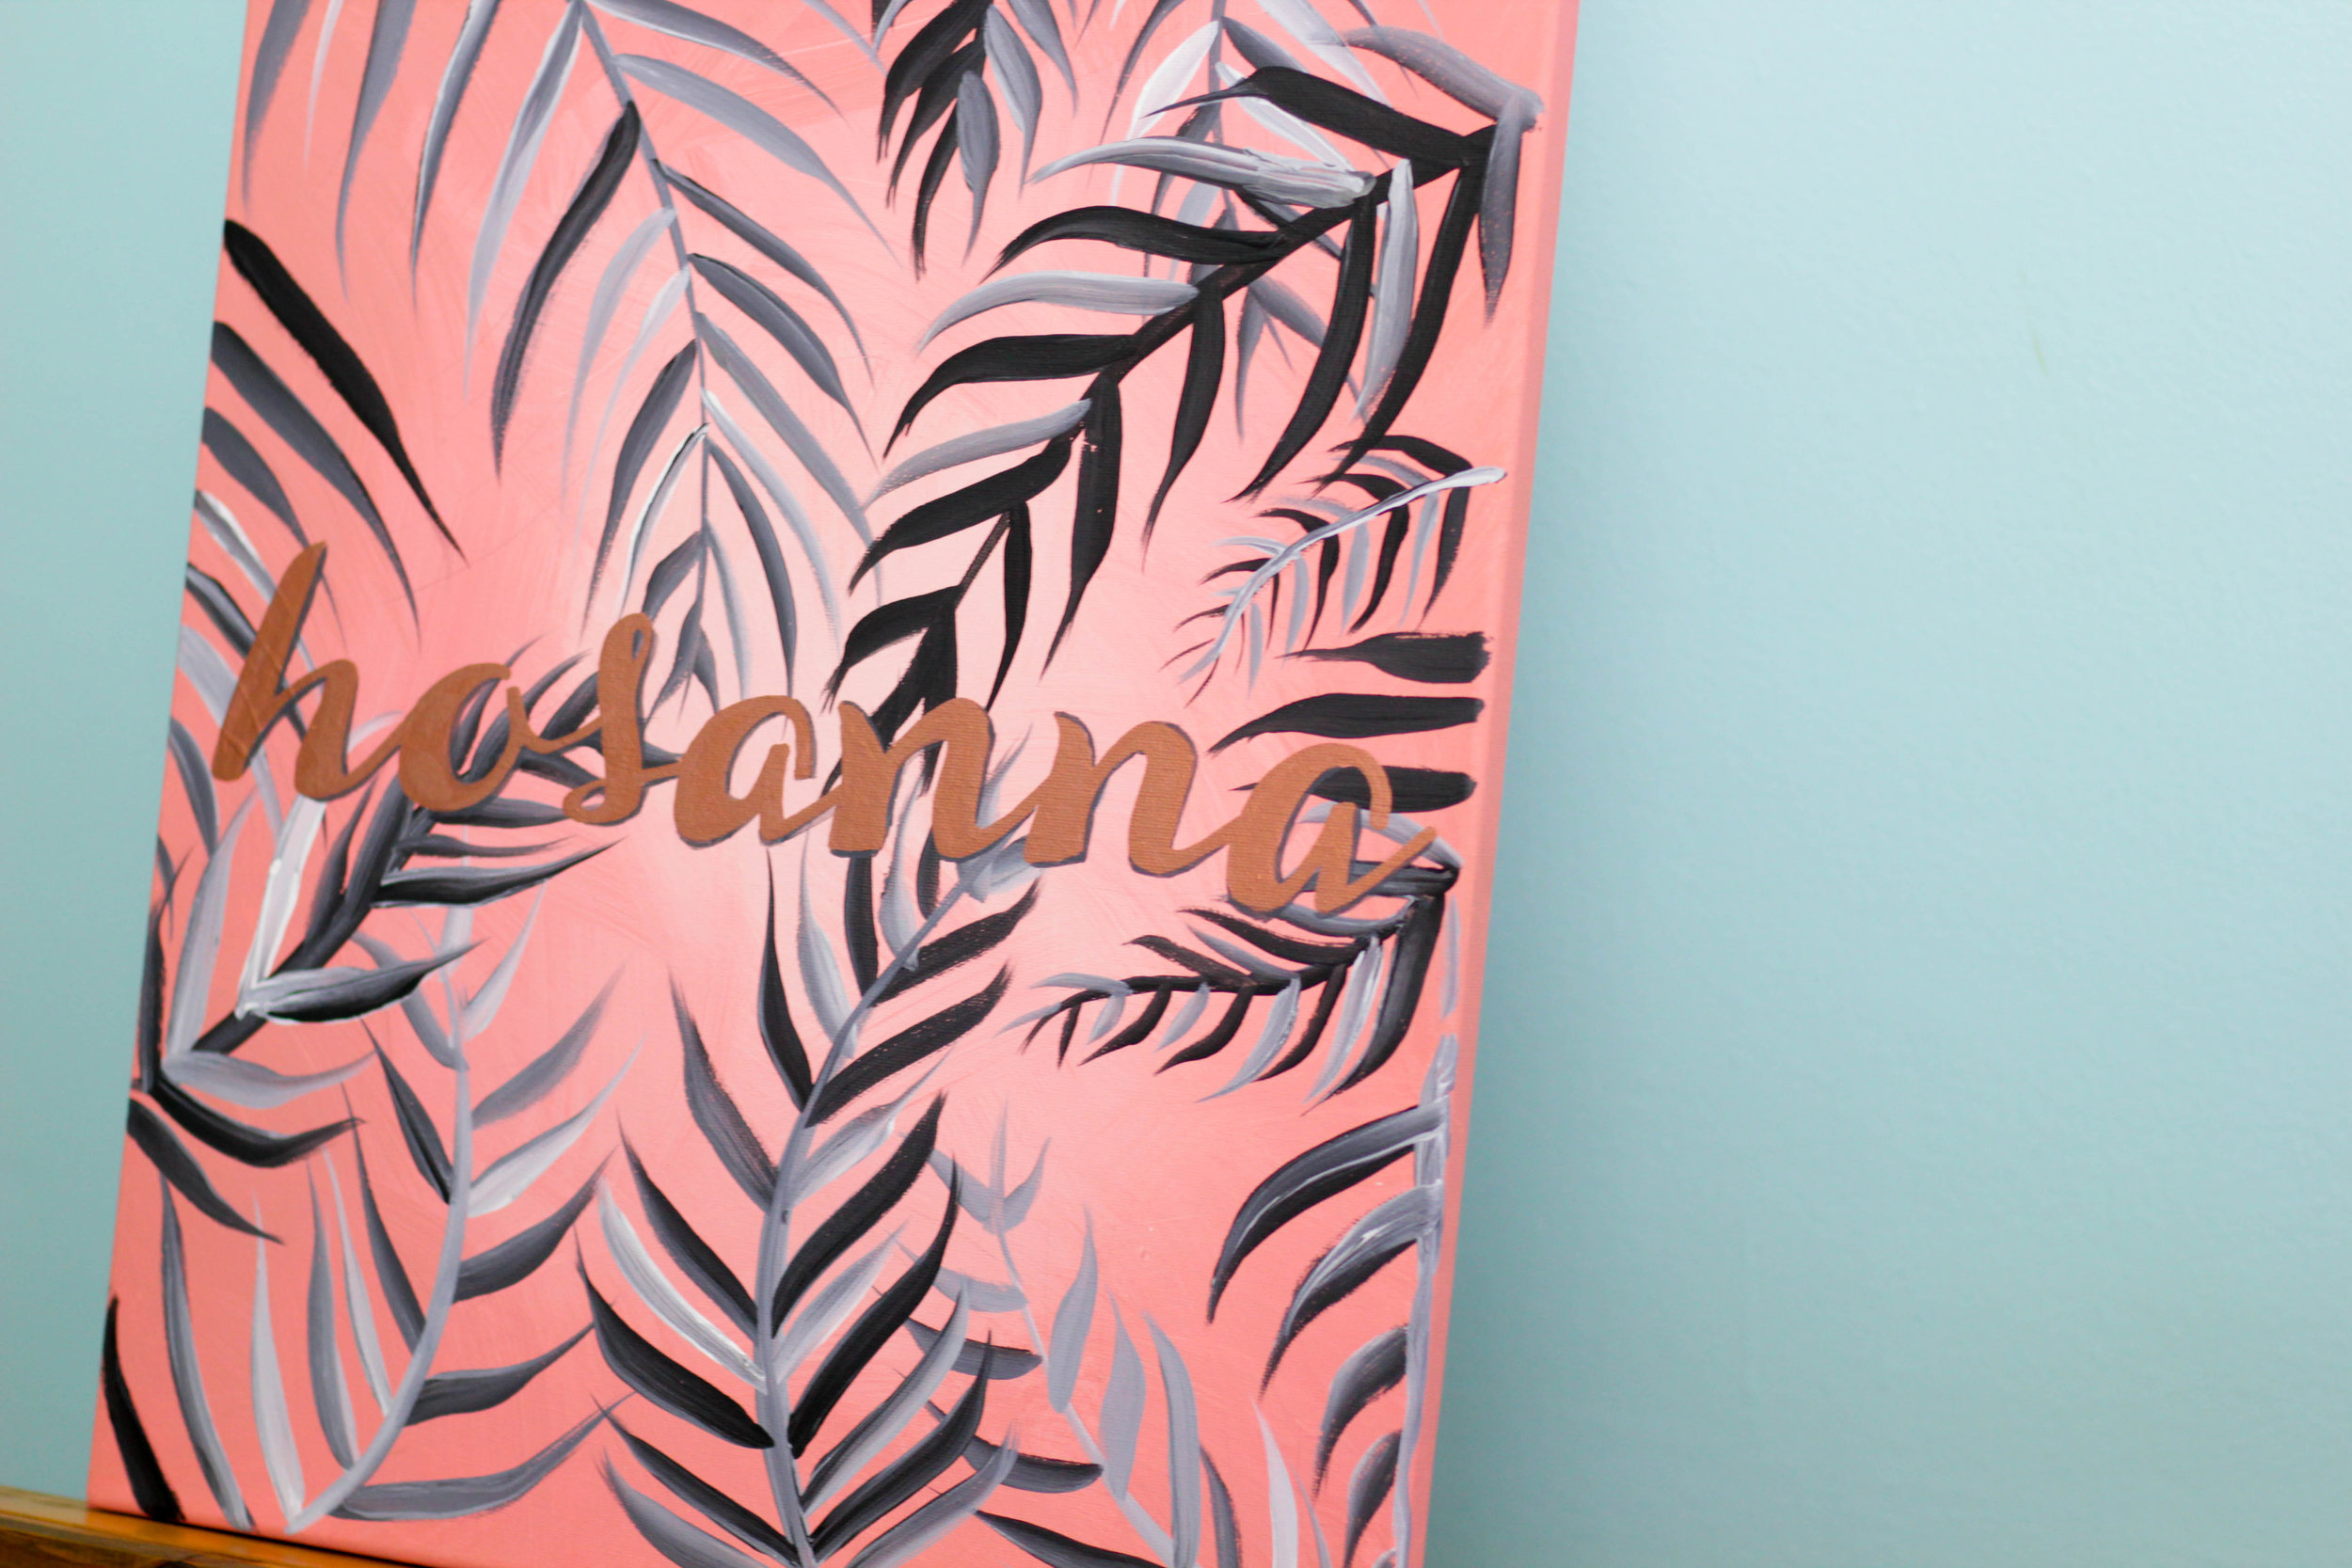 Hosanna Wall Art (COMING SOON)